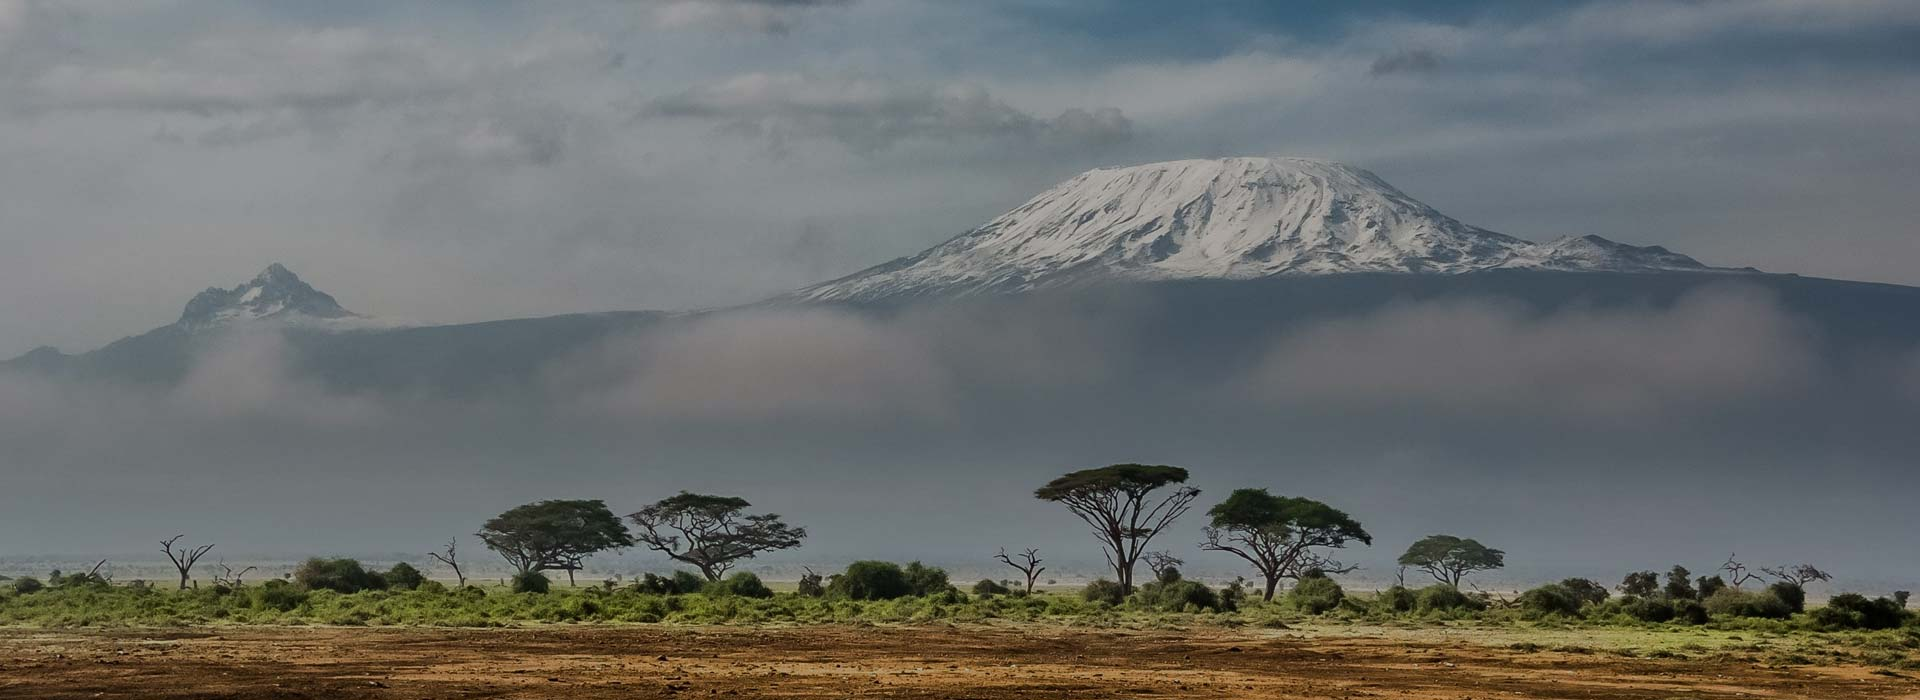 Daily Schedule For Kilimanjaro